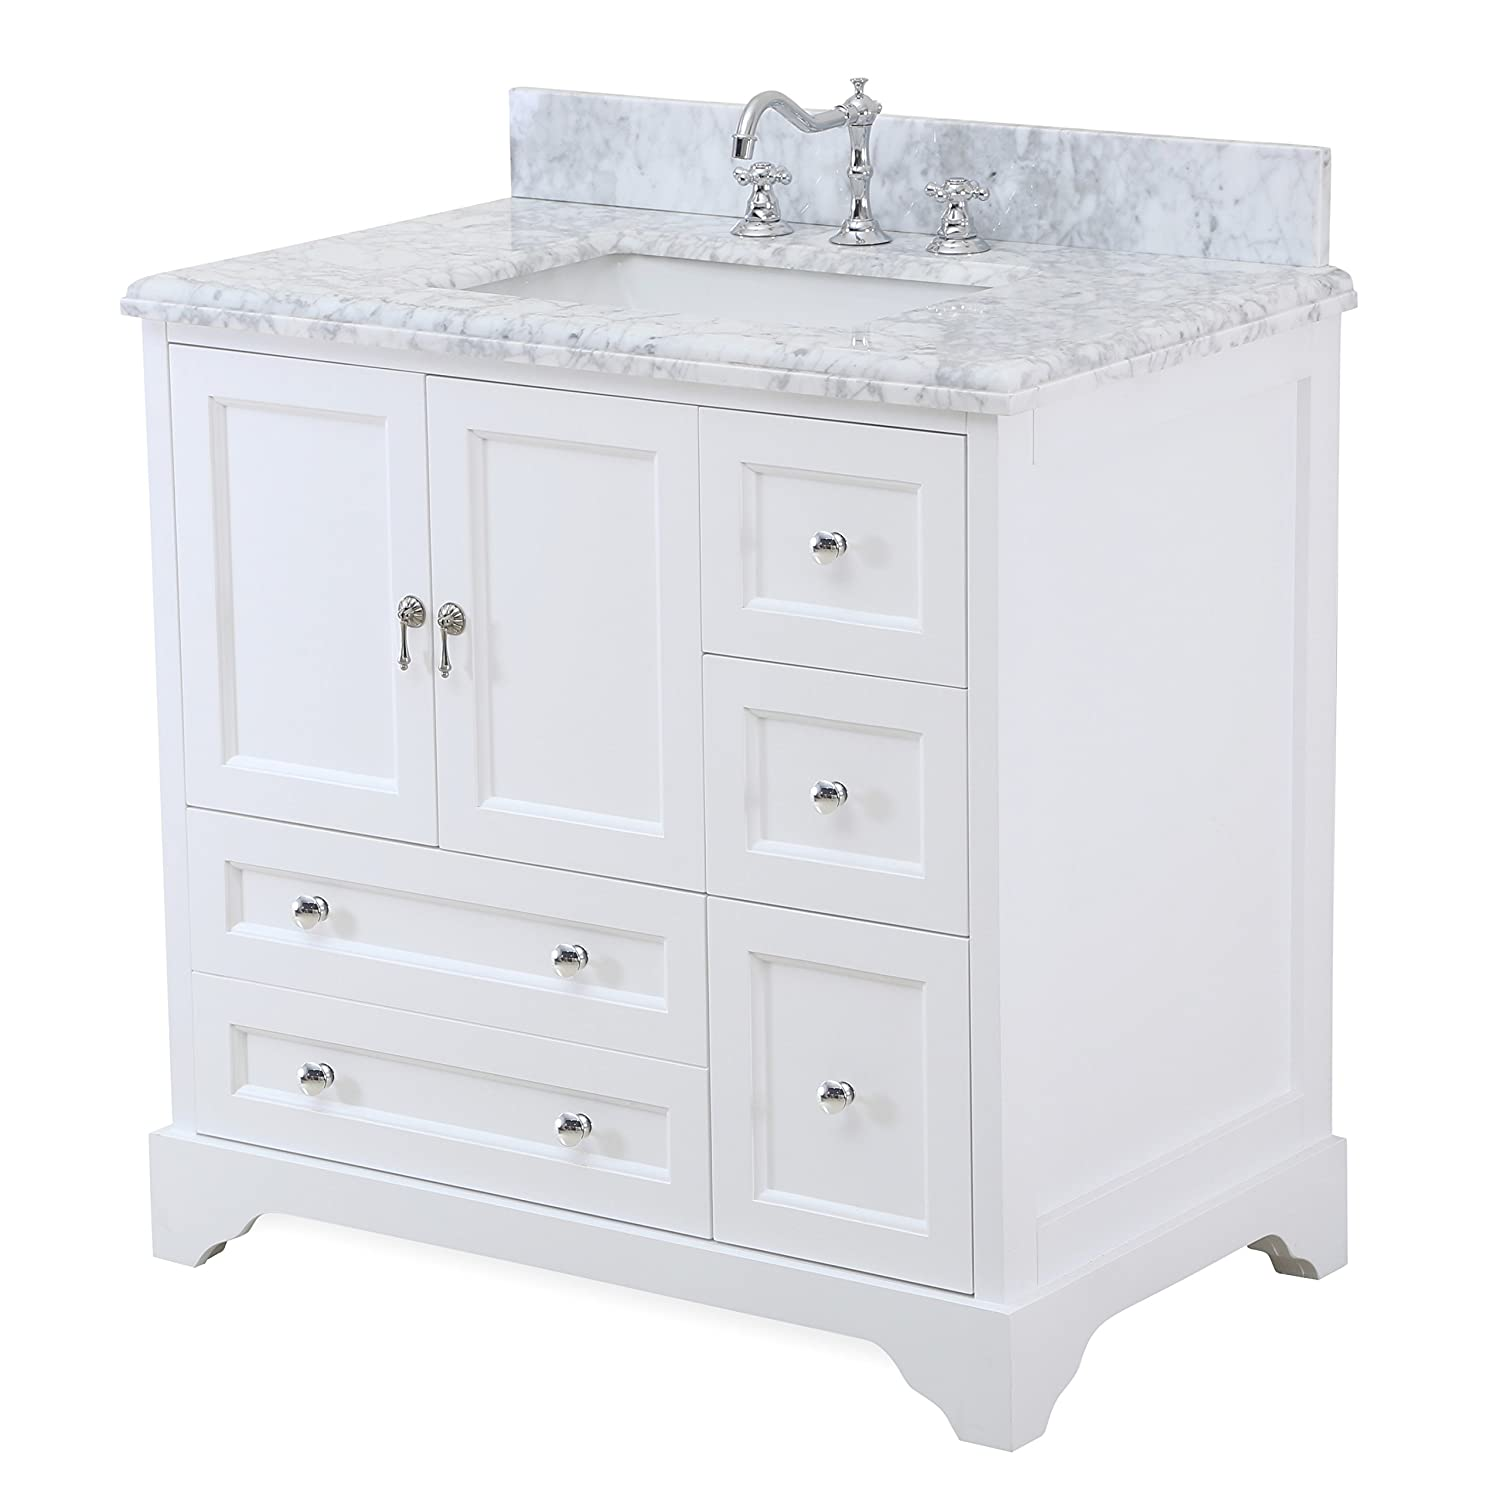 Madison 36-inch Bathroom Vanity (Carrara/White): Includes Italian ...